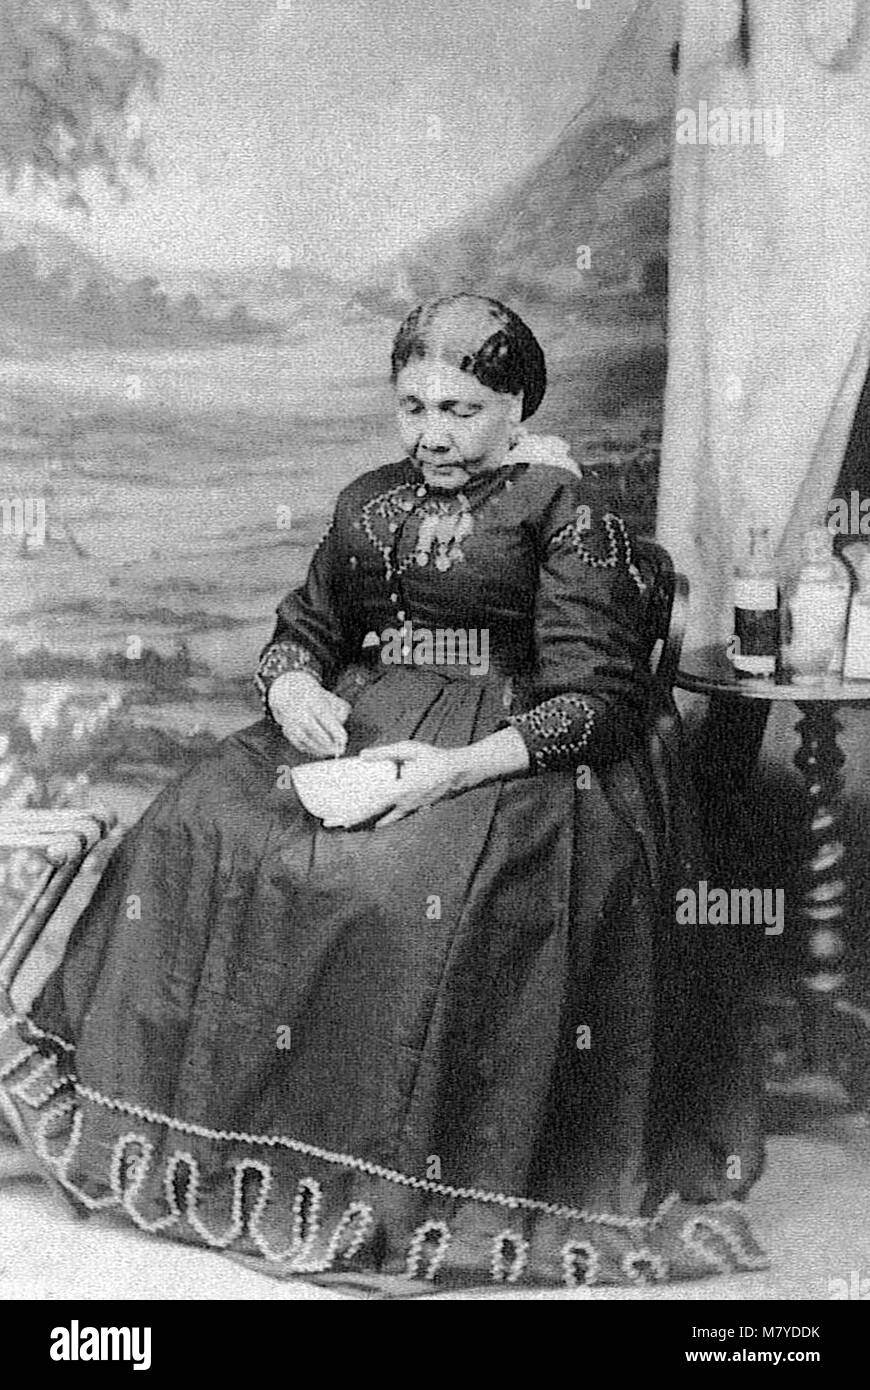 Mary Seacole (1805-1881), the only known portrait of the British-Jamaican nurse, c.1873 - Stock Image